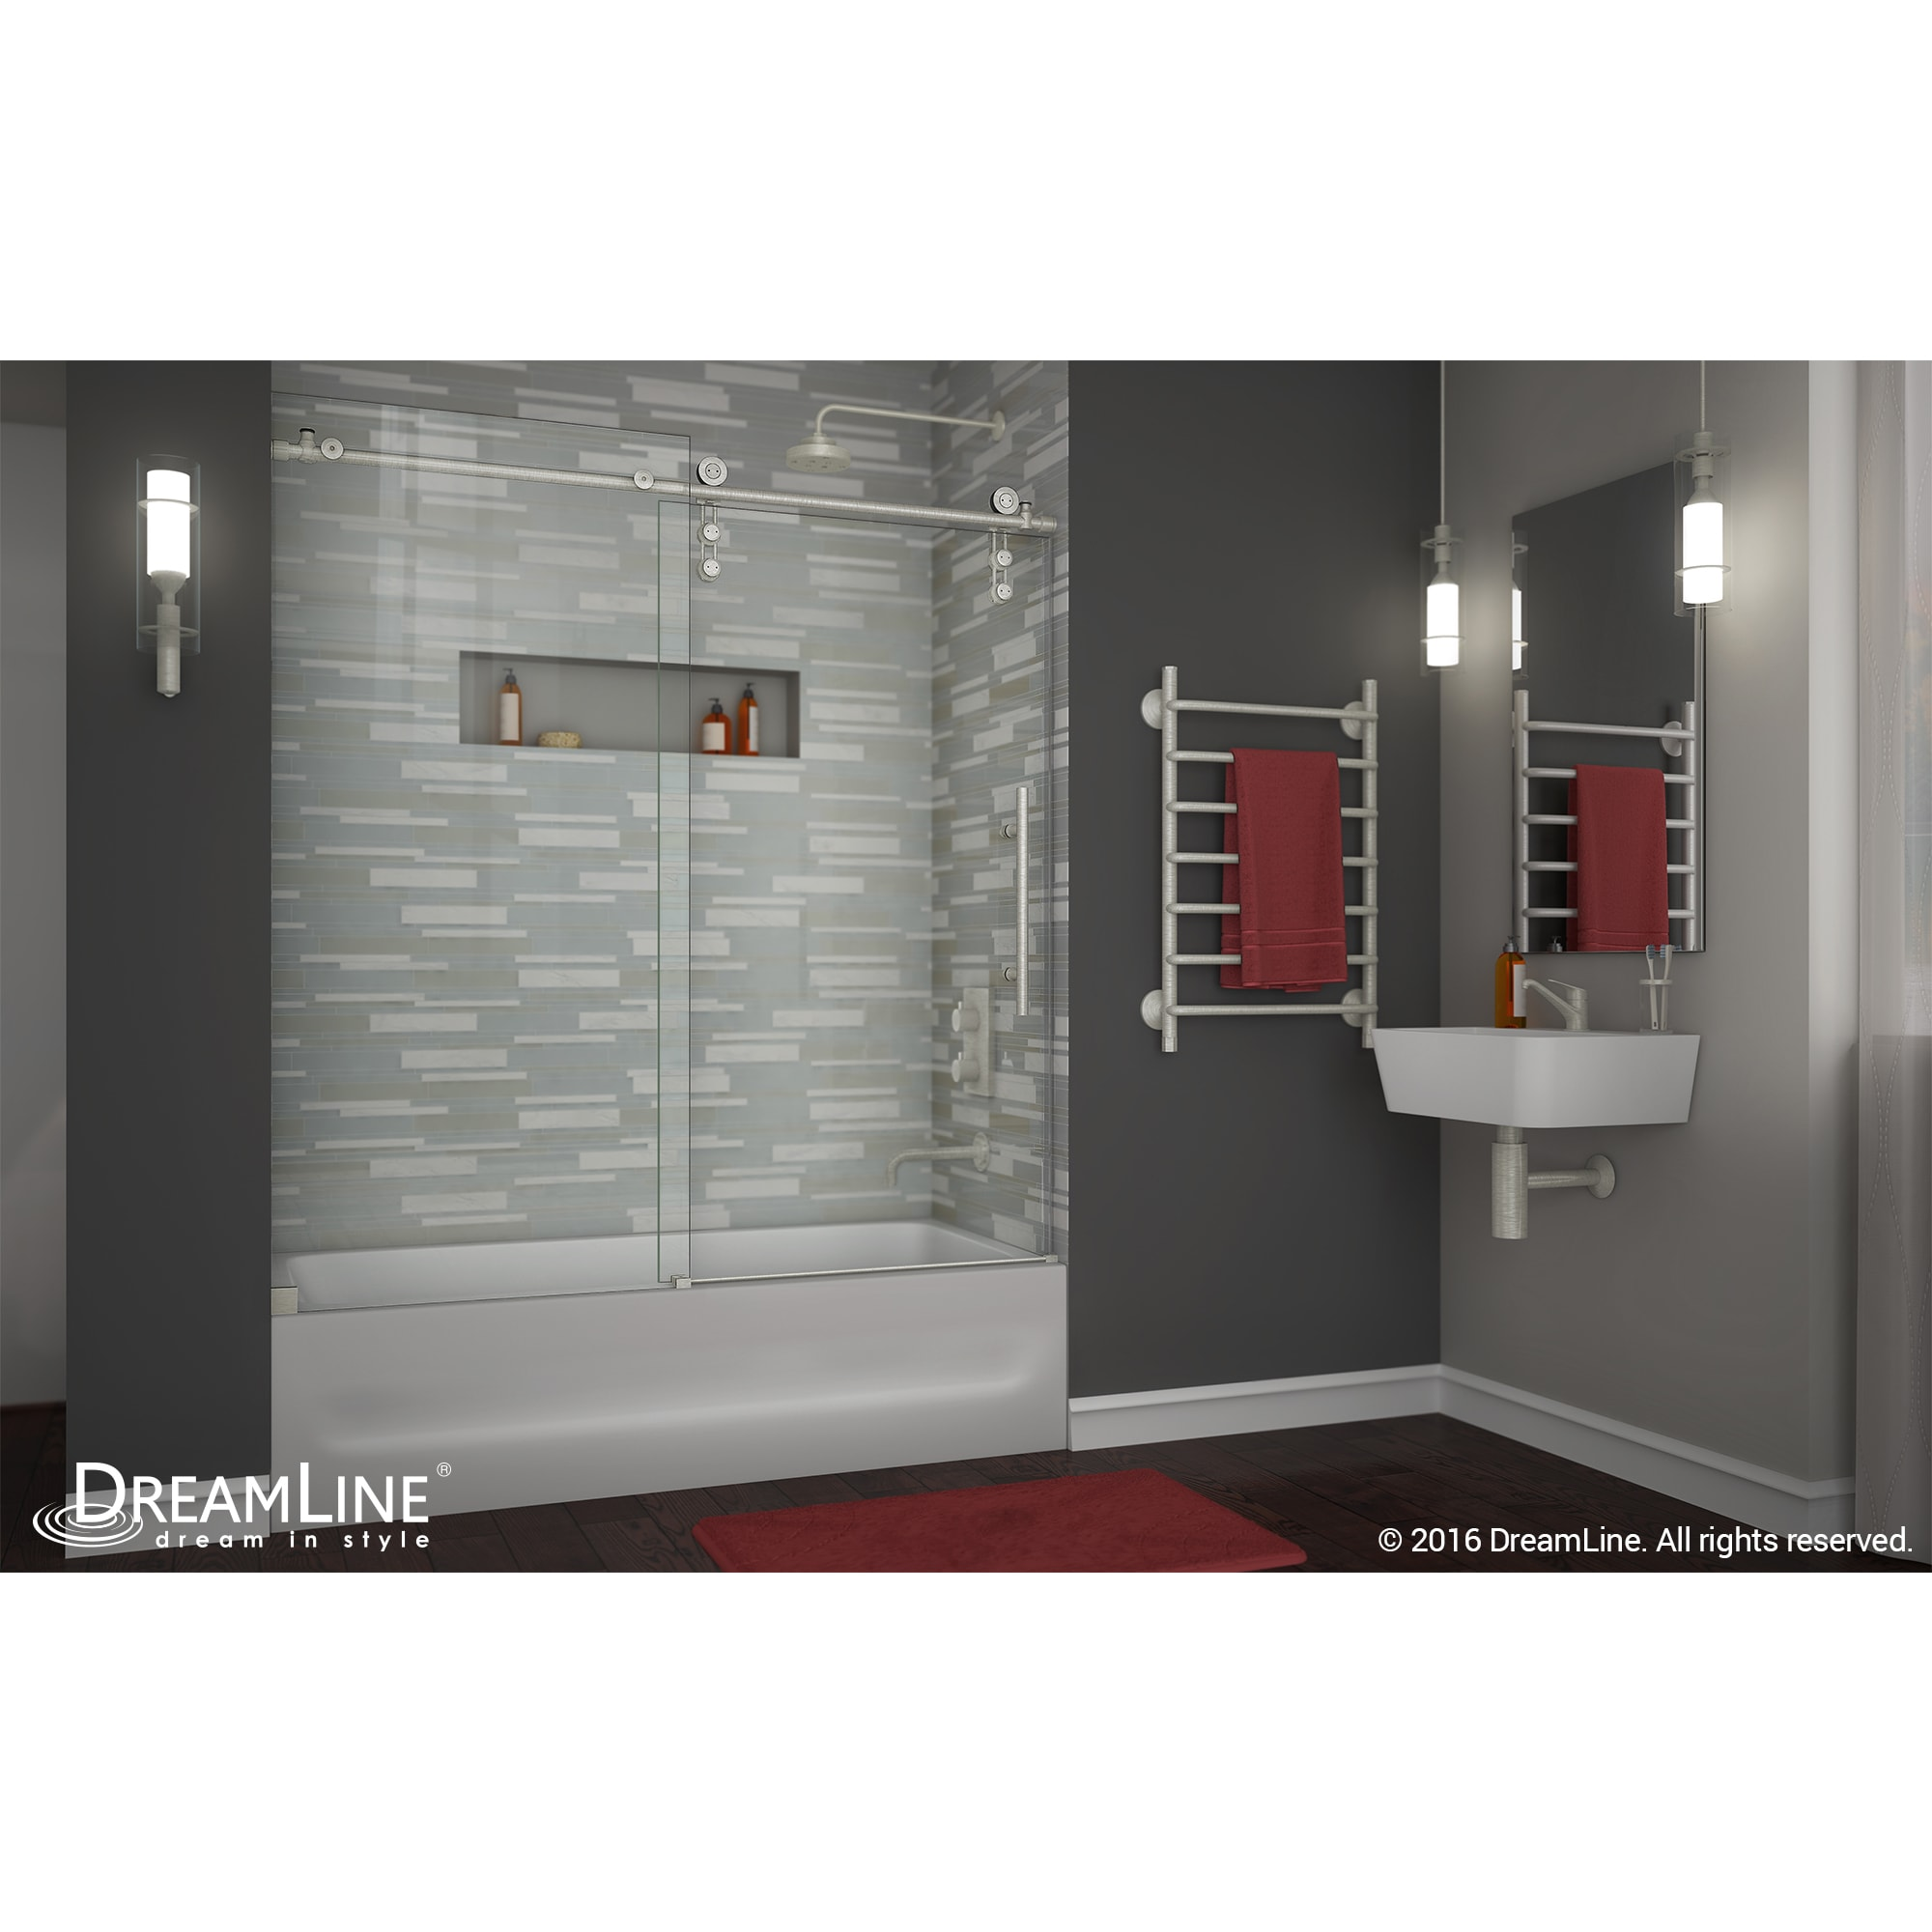 Shop Dreamline Enigma Z 55 59 In W X 62 In H Fully Frameless